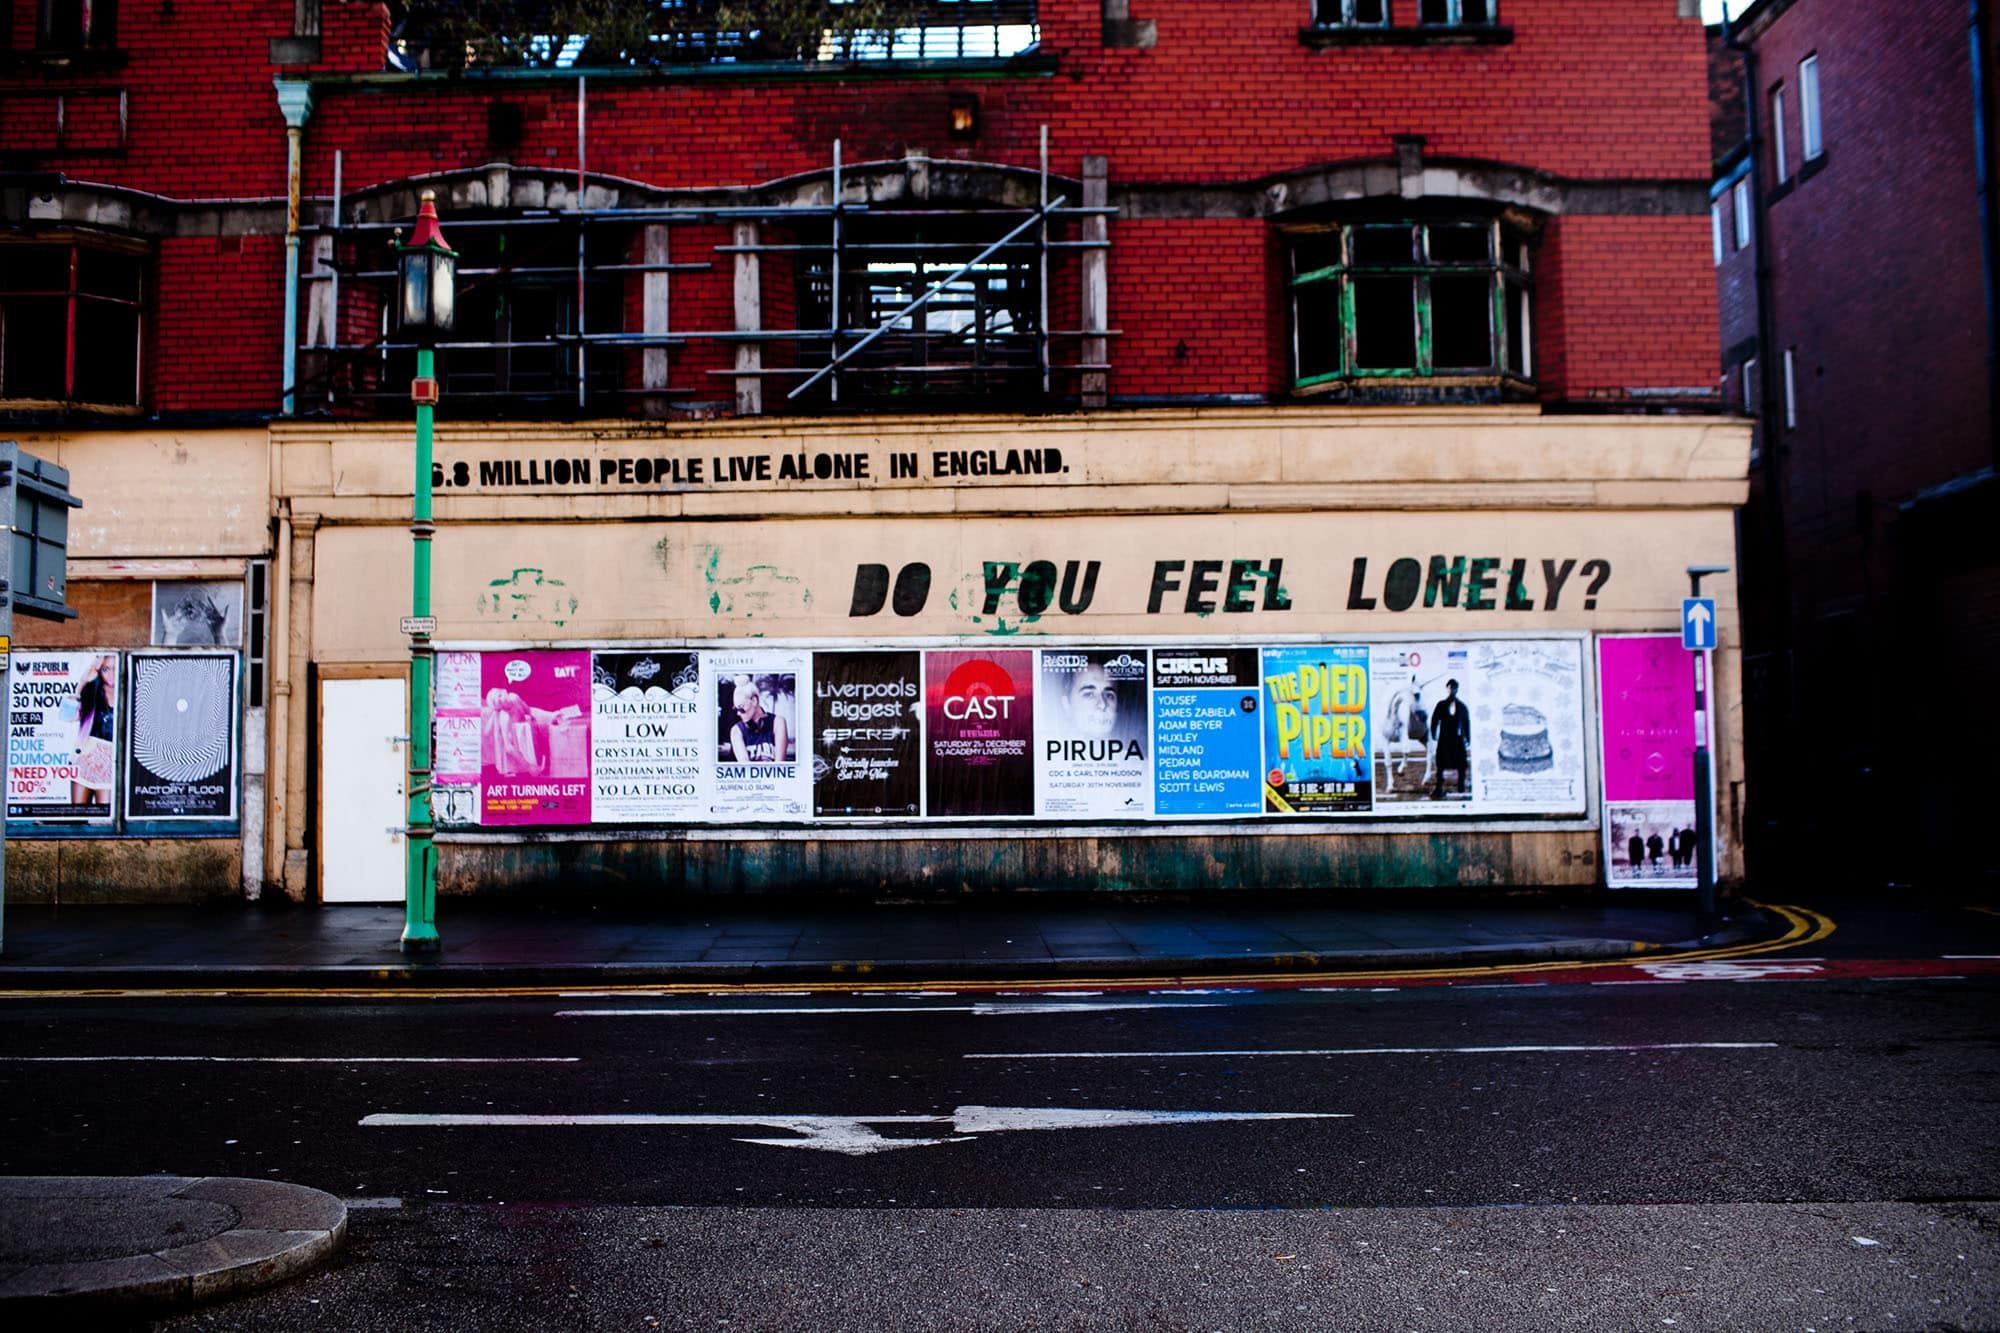 Do you feel lonely in Liverpool, England